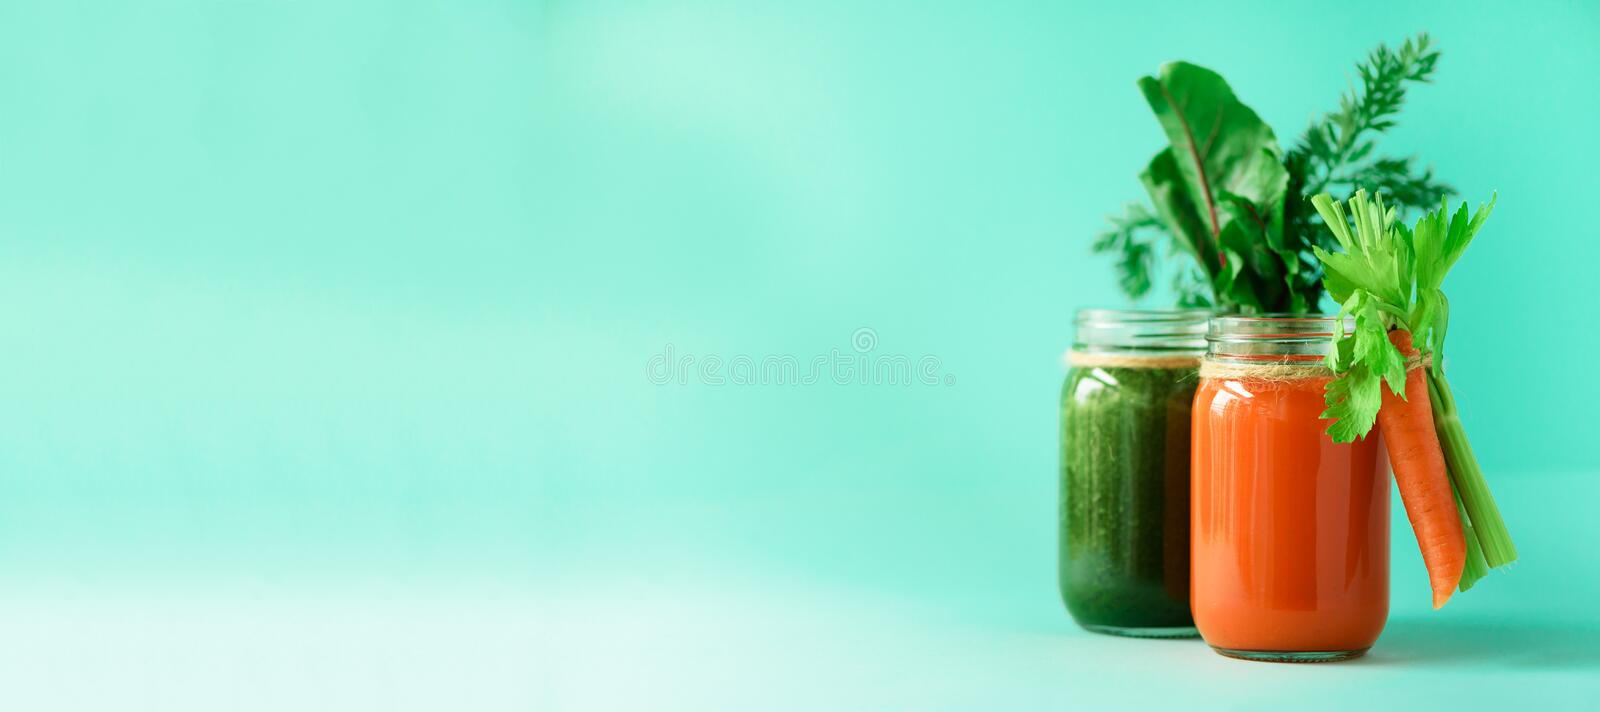 Healthy organic green and orange smoothies on blue background. Banner. Detox drinks in glass jar from vegetables -. Carrot, celery, beet greens and tops. Copy royalty free stock images